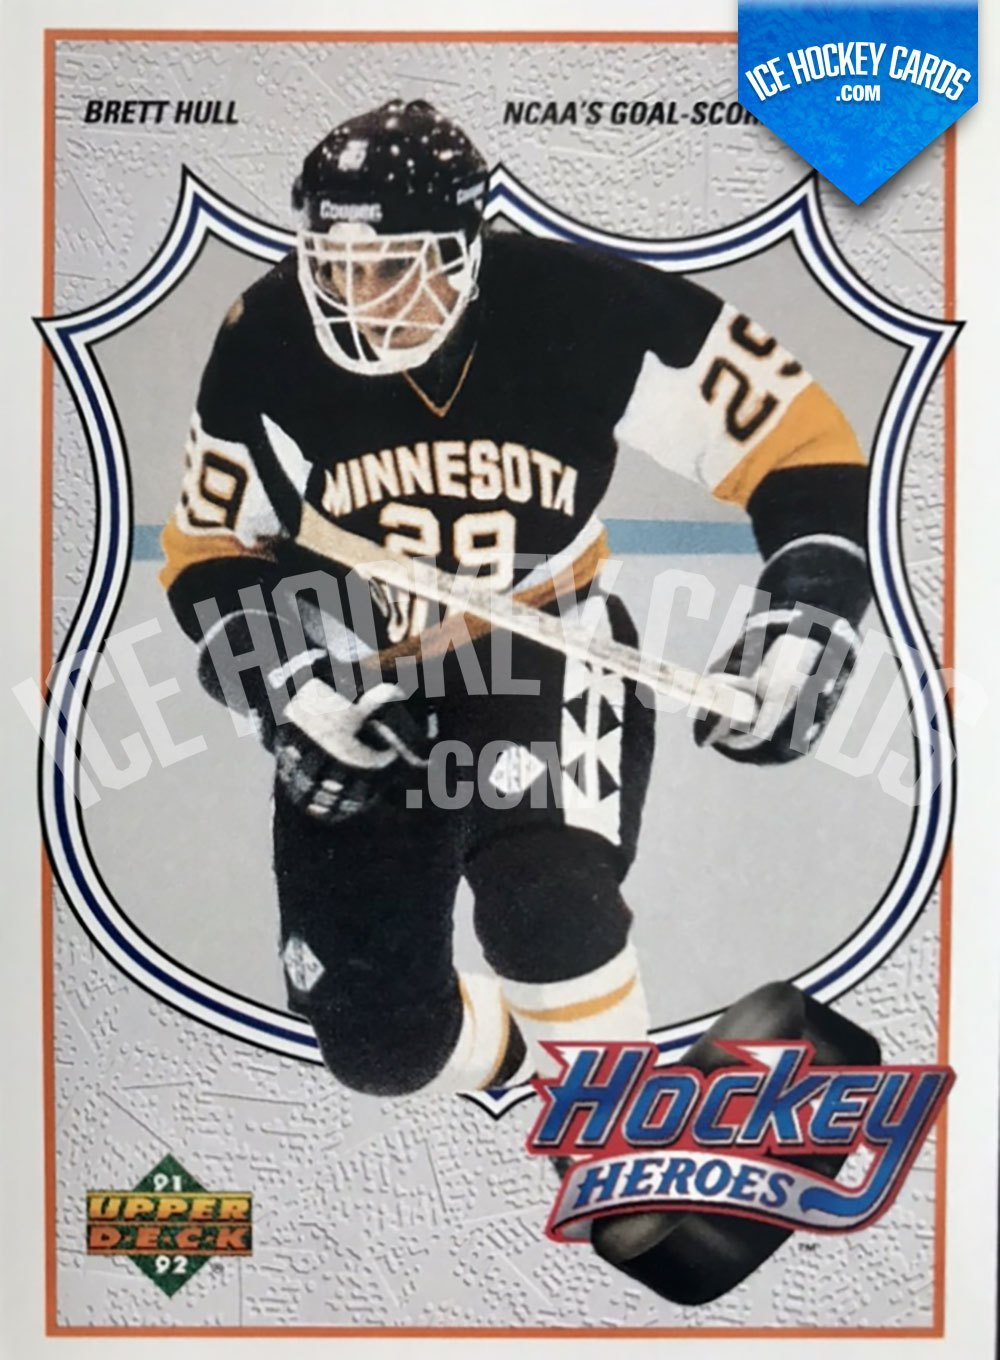 Upper Deck - Series 1991-92 - Brett Hull Hockey Heroes NCAA's Goal Scoring Leader HOF